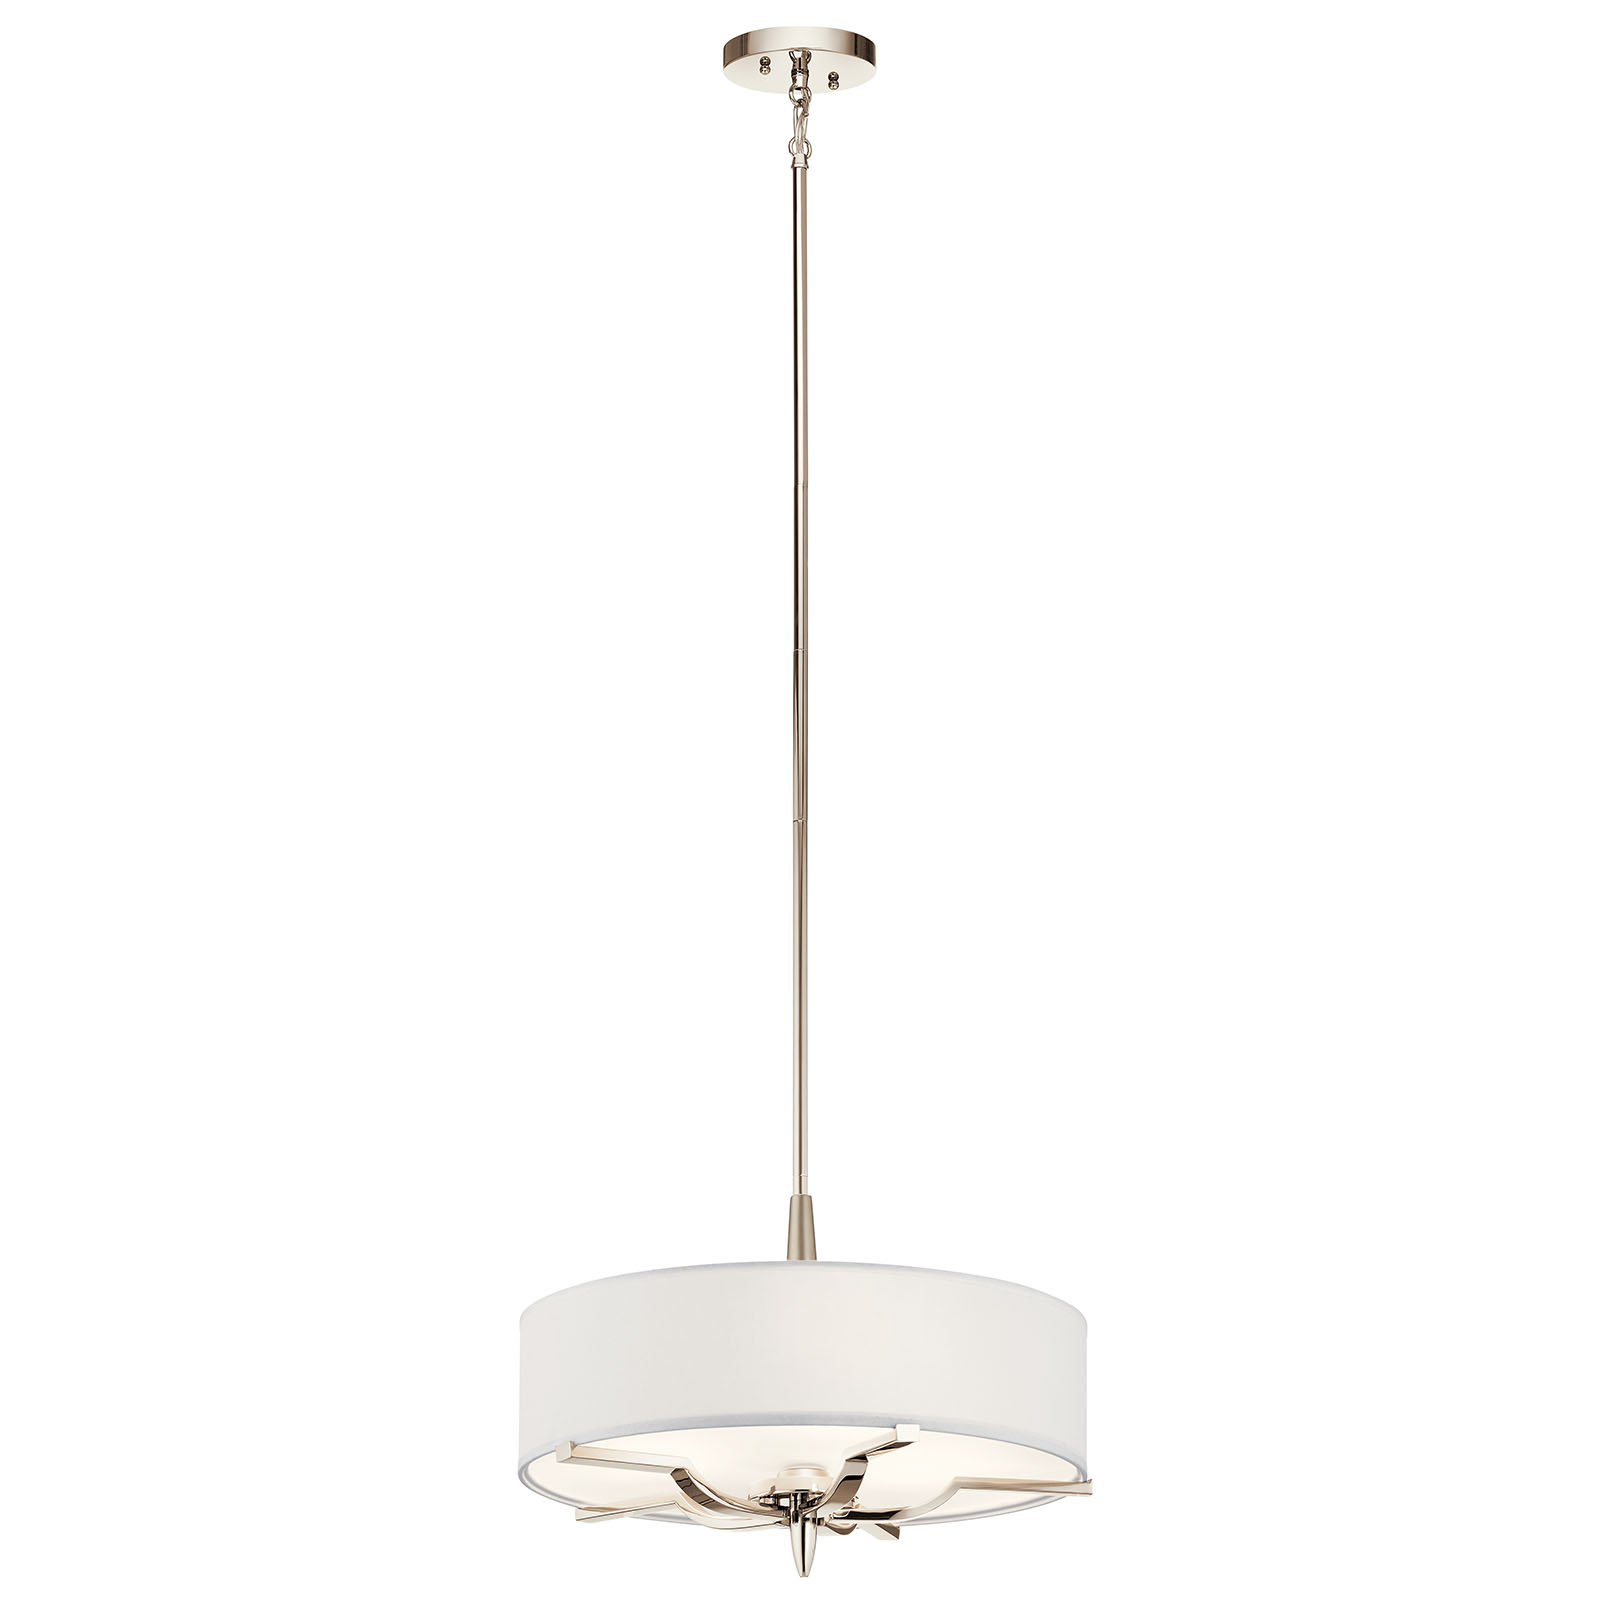 KIC 44313PN Pendant/Semi Flush 3Lt NEWSTOCK MAR 2019